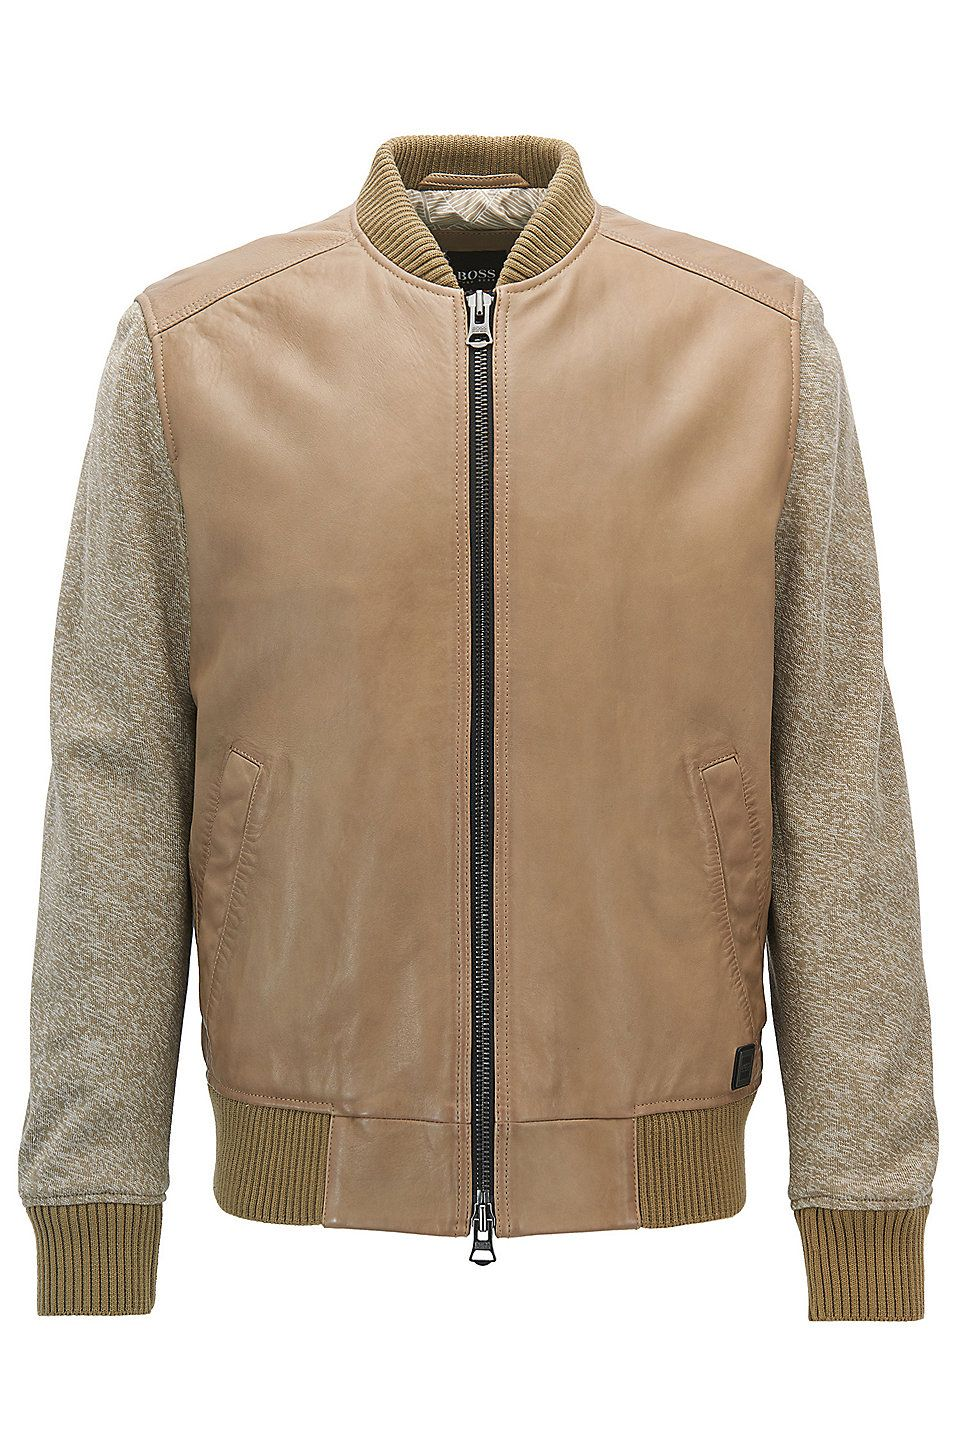 Hugo Boss Bomber Jacket In Leather With Knitted Sleeves Beige Leather Jackets From Boss For Men In The Official Hu Bomber Jacket Jackets Beige Leather Jacket [ 1456 x 960 Pixel ]